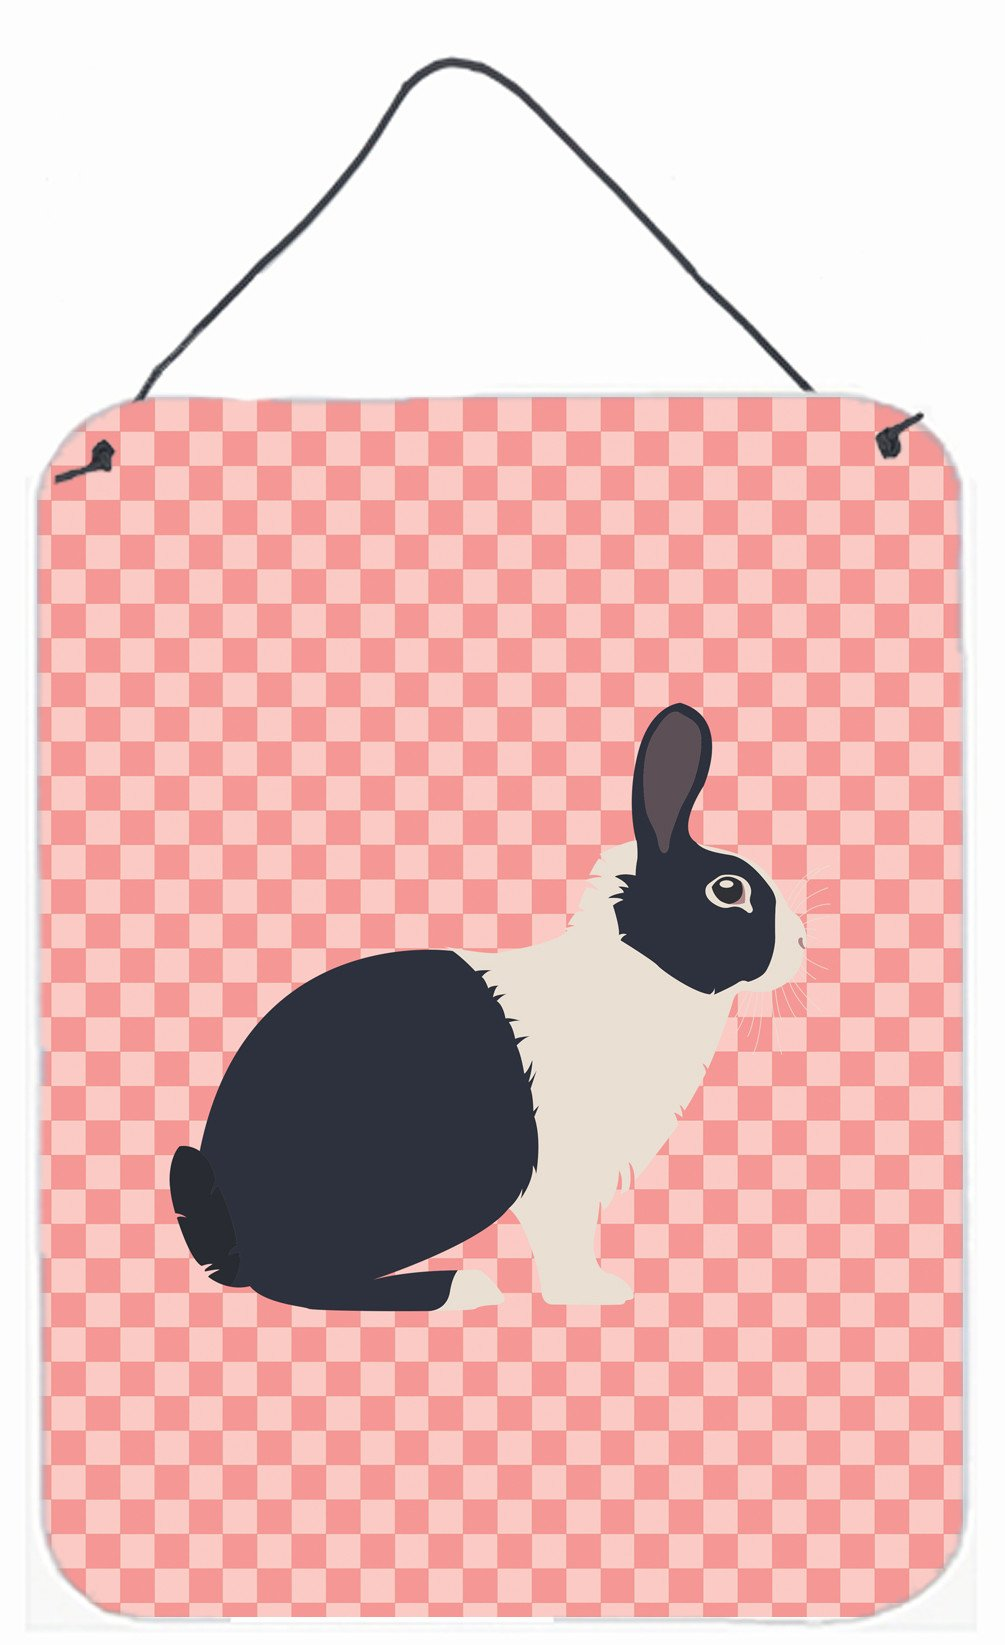 Dutch Rabbit Pink Check Wall or Door Hanging Prints BB7958DS1216 by Caroline's Treasures